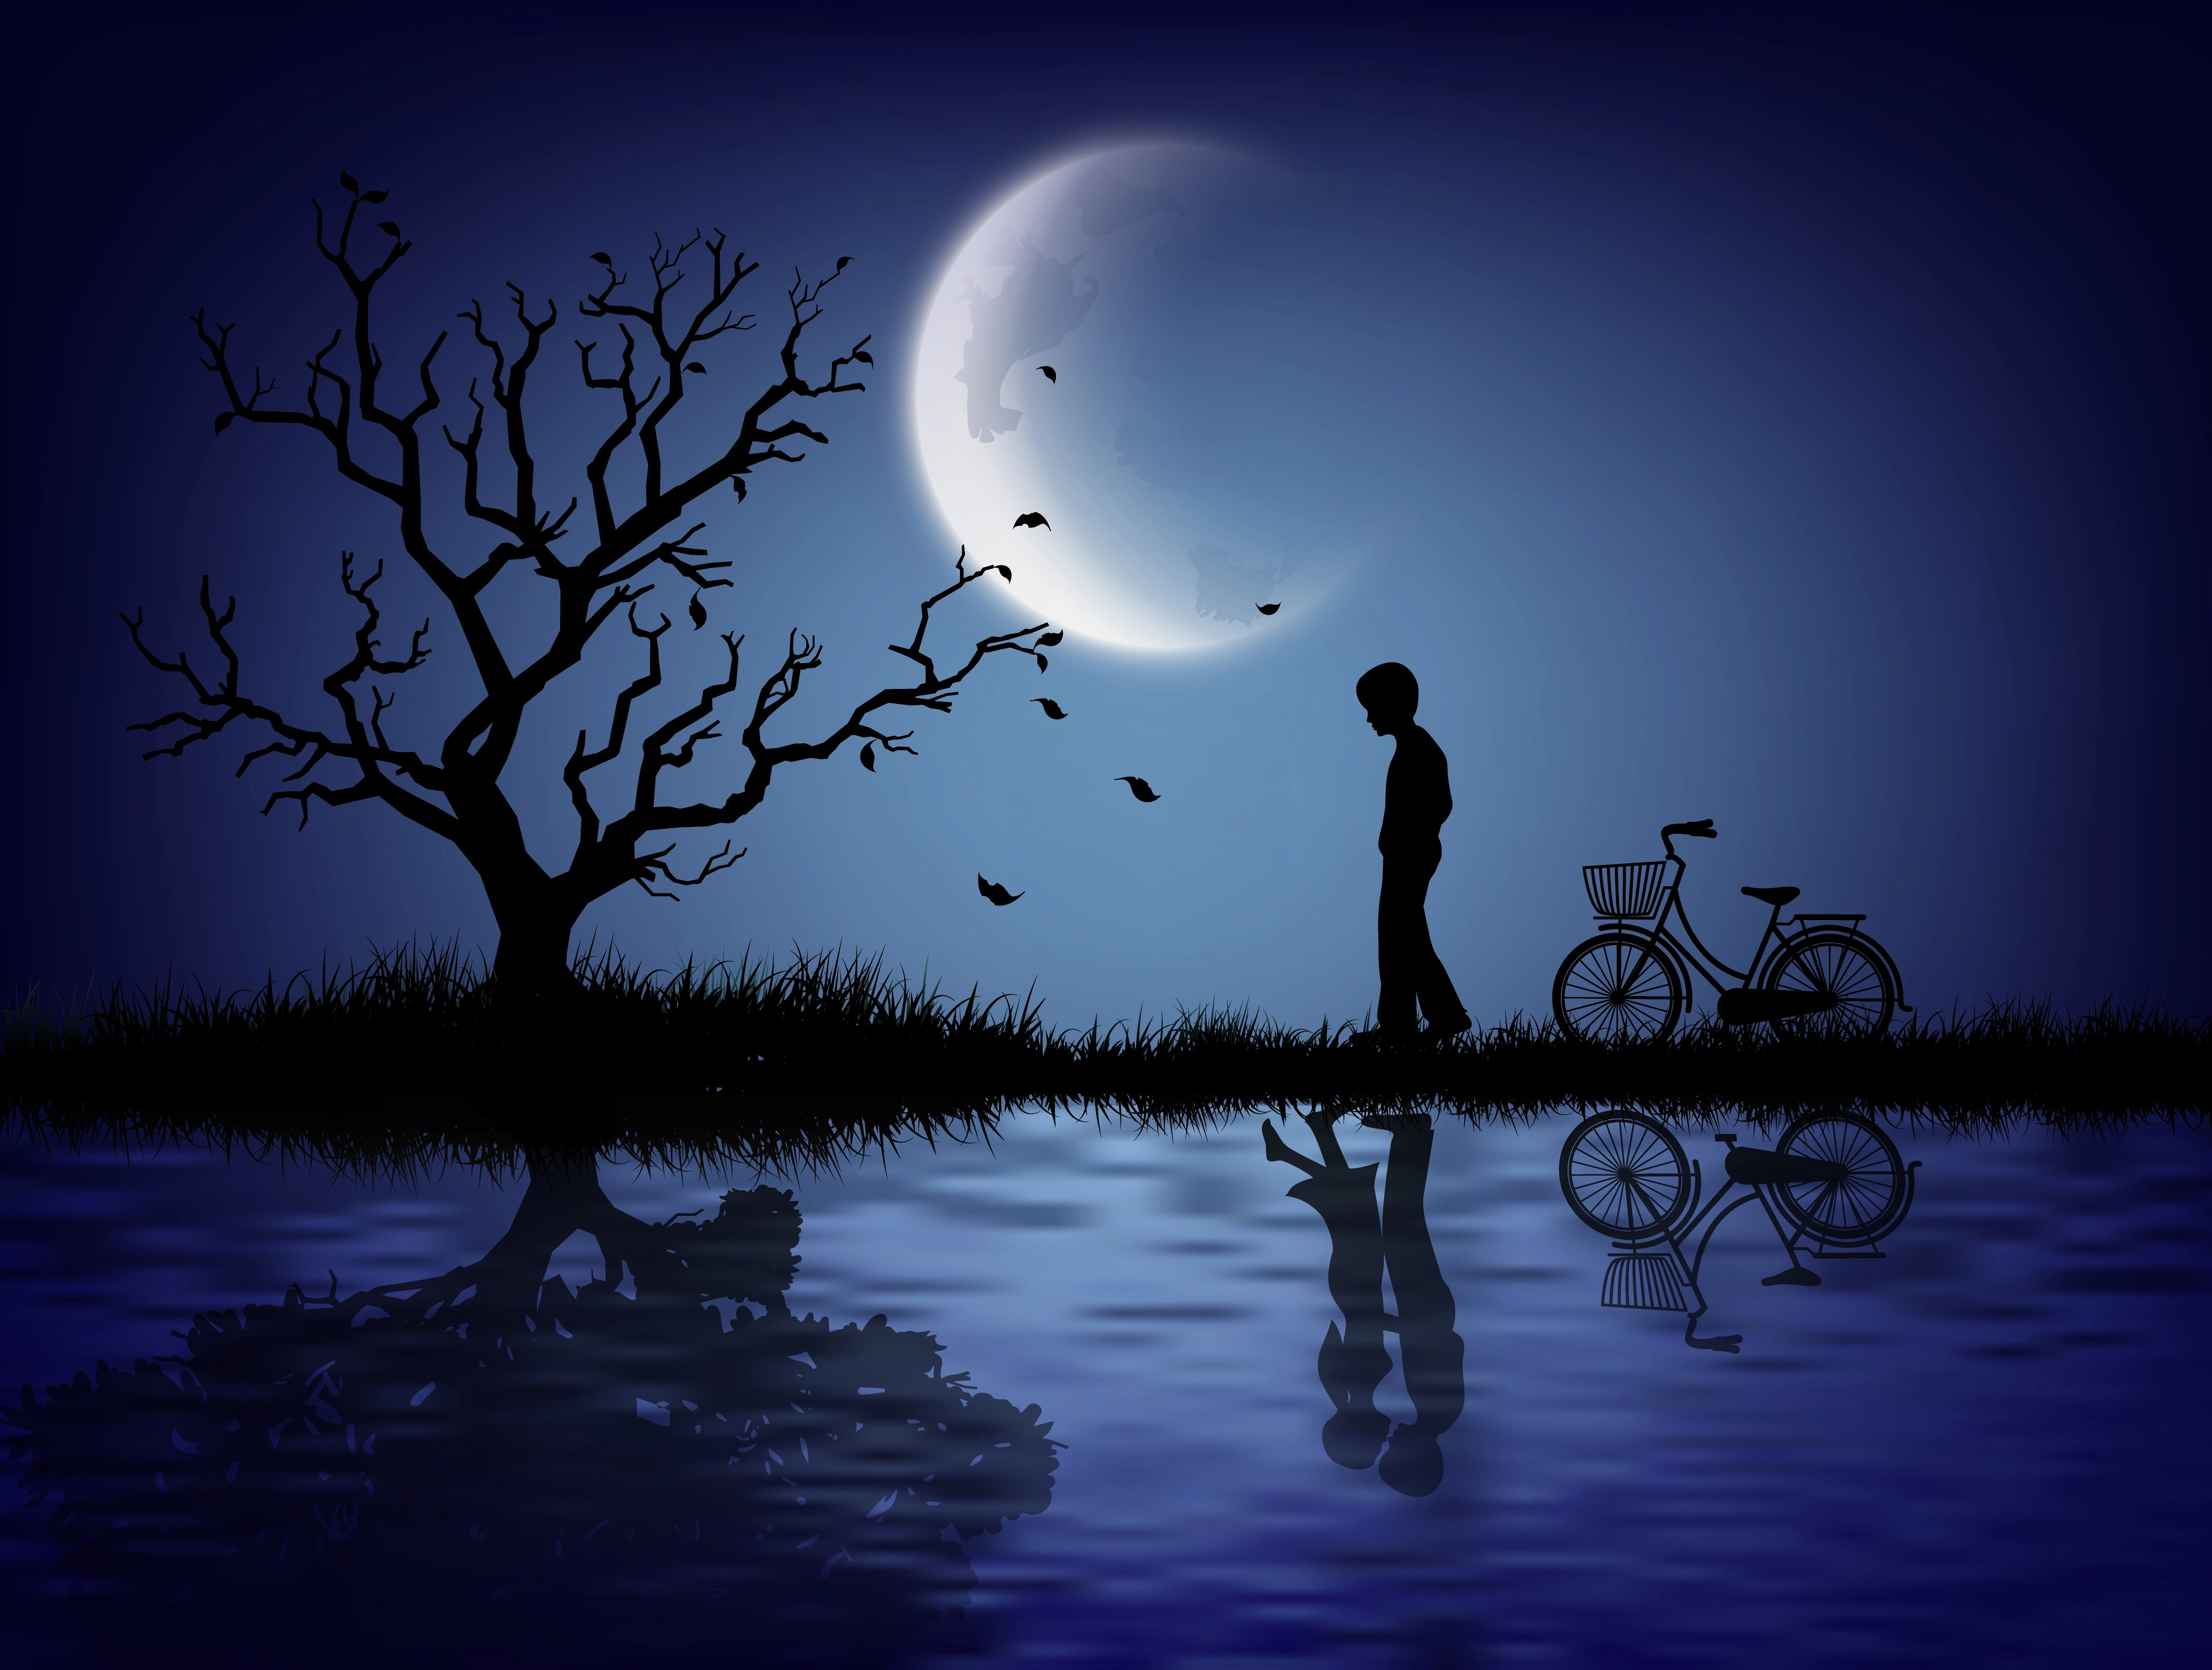 A Sad Girl Wallpaper The Silhouette Of A Lonely Man Download Free Vectors